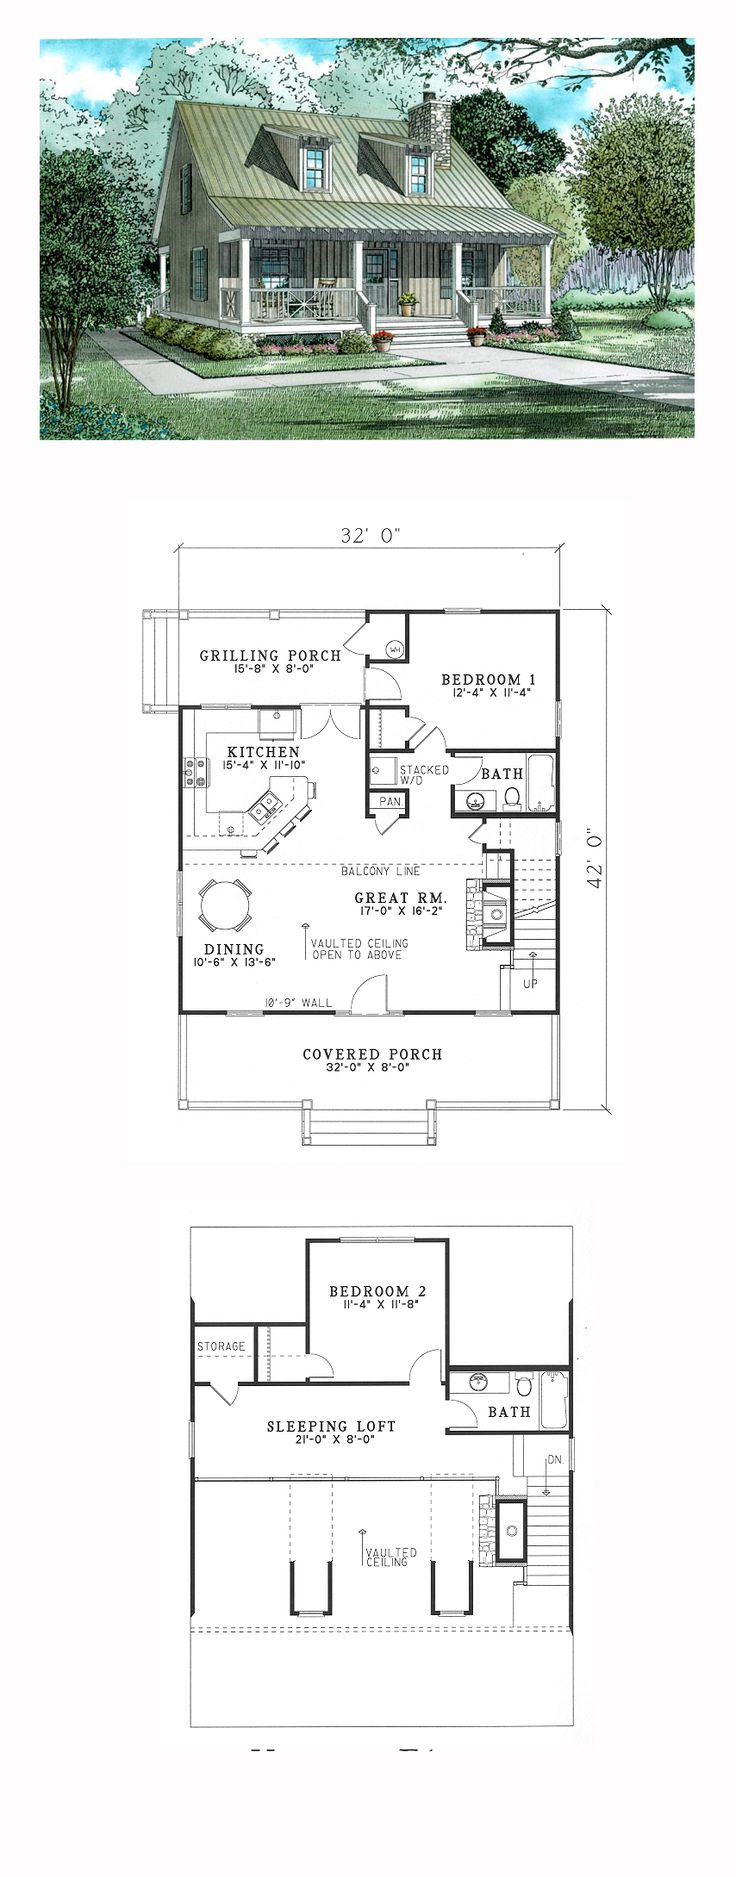 1000+ ideas about Small ountry Houses on Pinterest House plans ... - ^